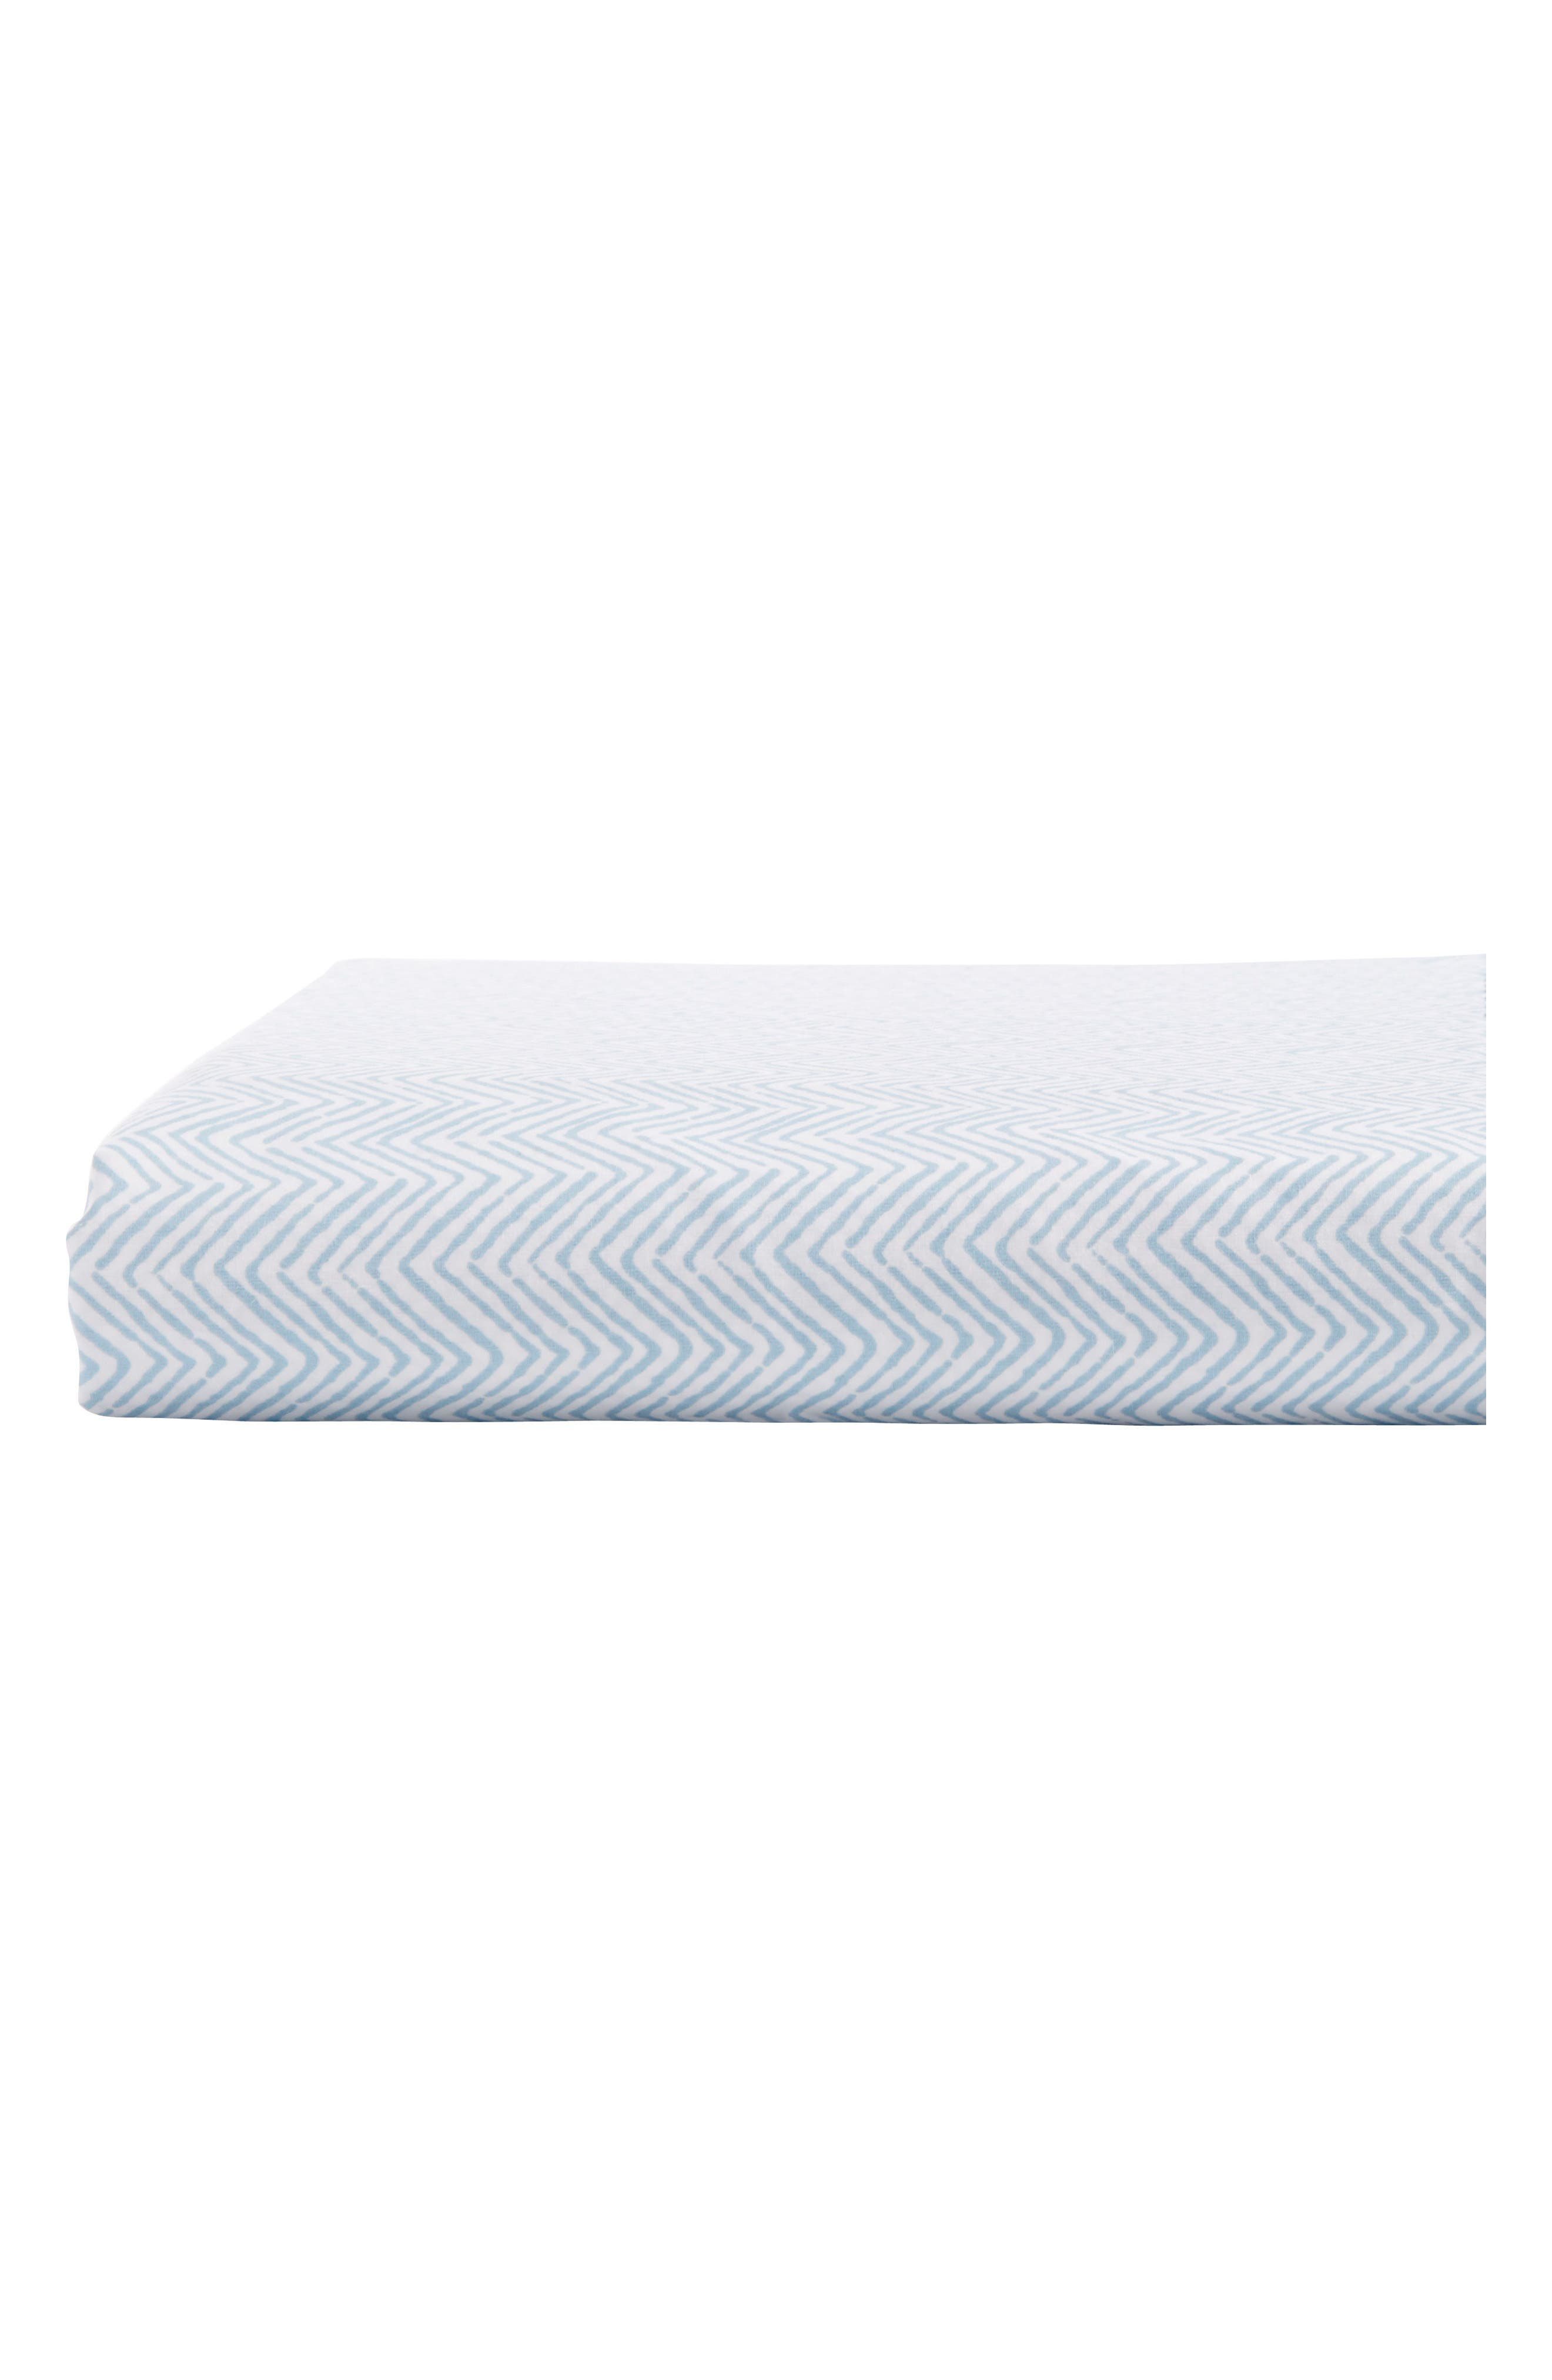 John Robshaw Chevron 400 Thread Count Fitted Sheet